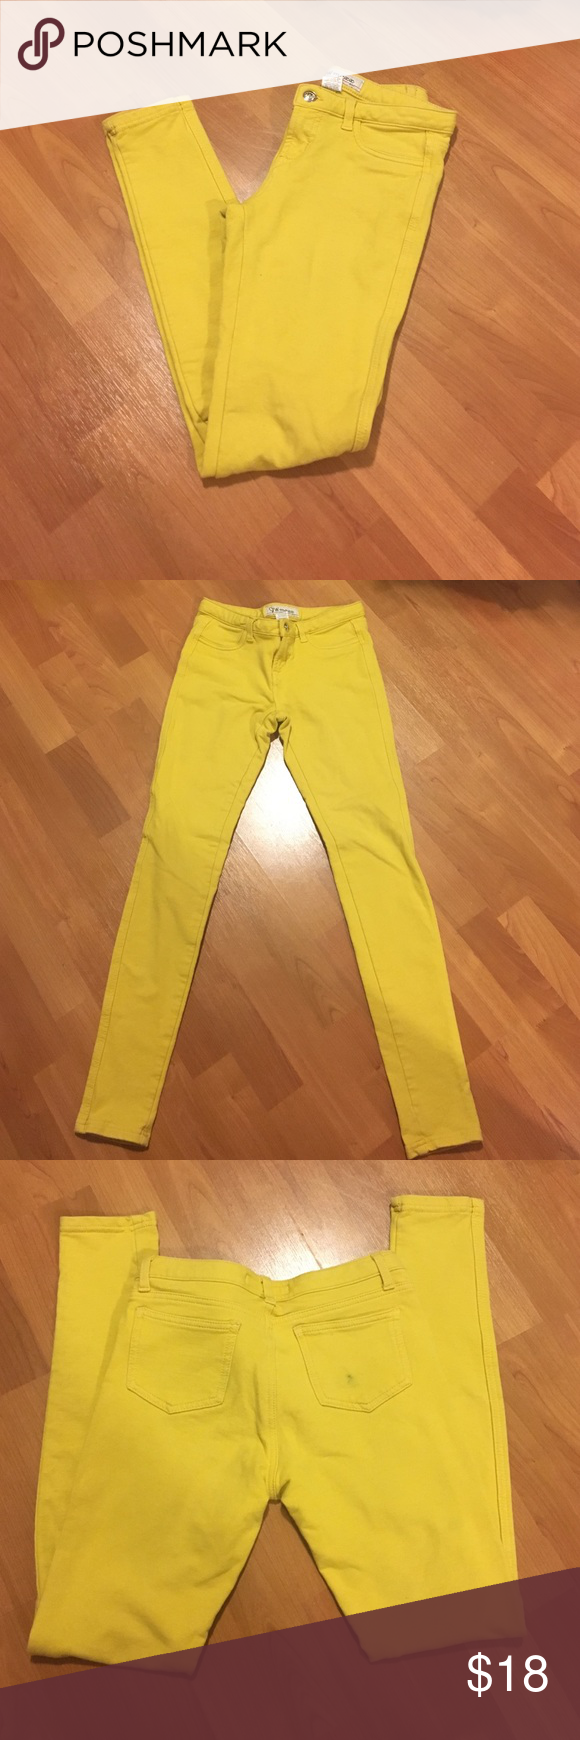 Mustard yellow pant leggings Thick material- not see through like those other cheap leggings. Usable back pockets. Right back pocket has small stain- price adjusted to account for it. Size medium. Open to offers. Bundle and save Jeans Skinny